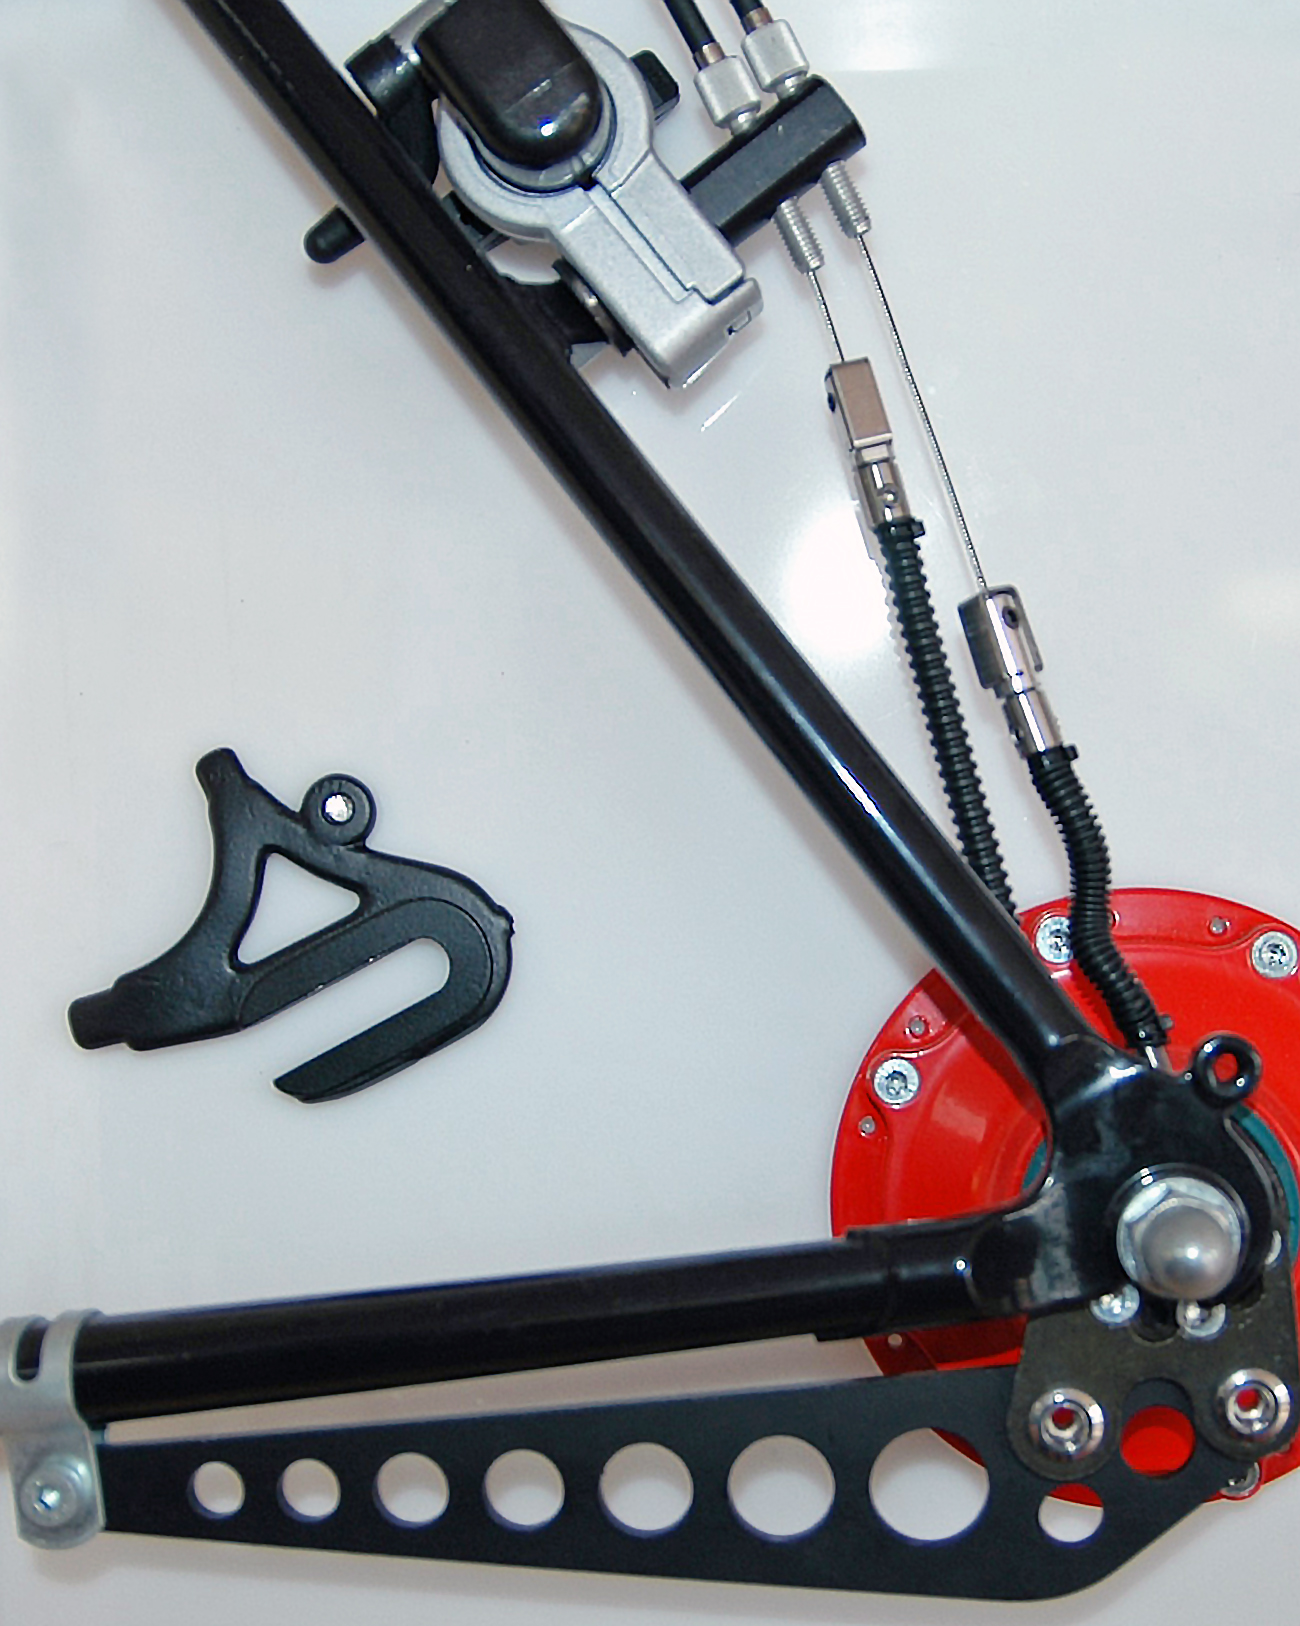 Std Axle Plate with Torque Arm clamp